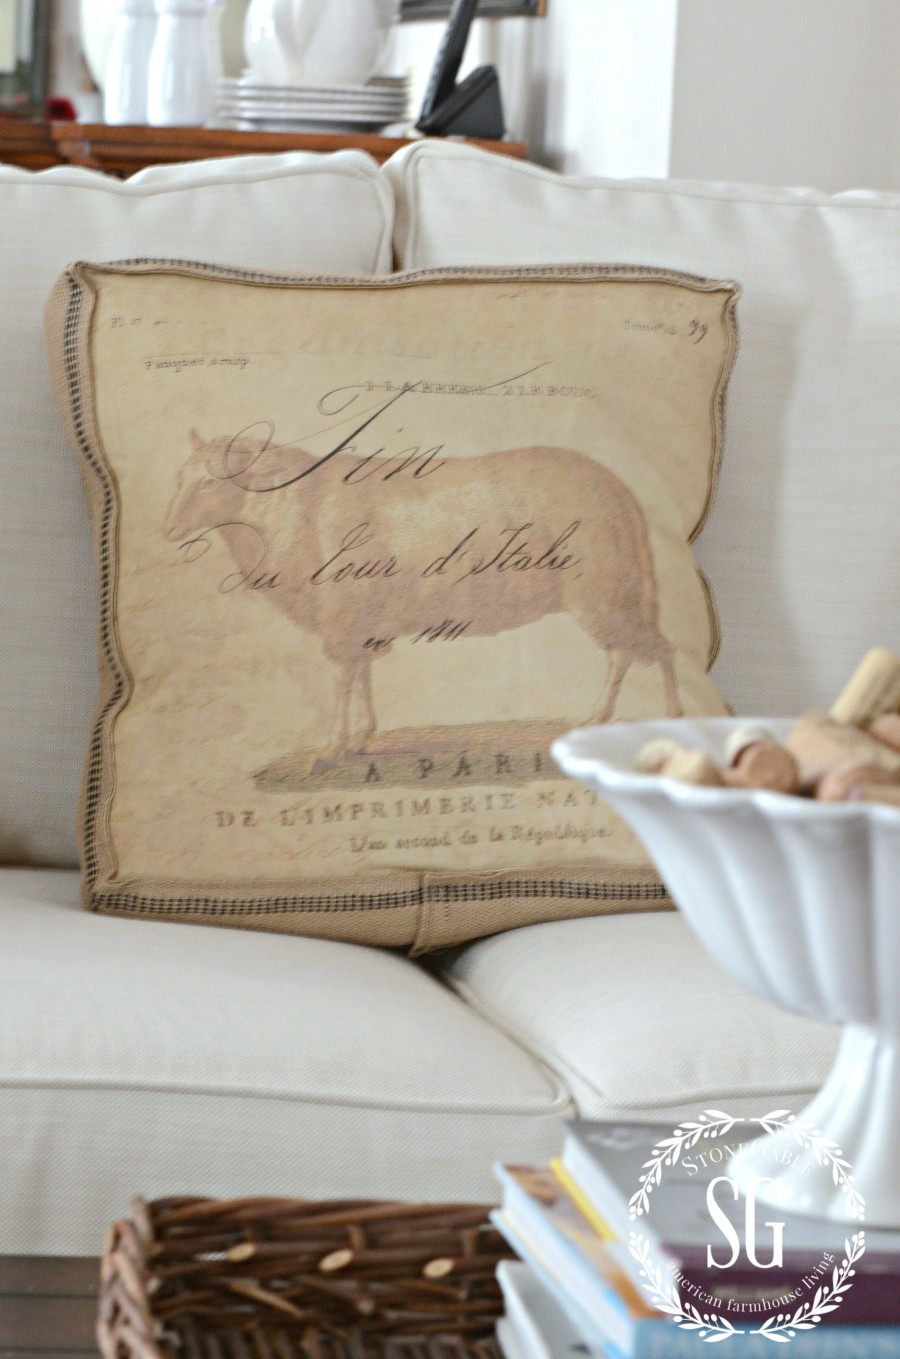 POTTERY BARN SOFA-cushions and sheep pillow-stonegableblog.com